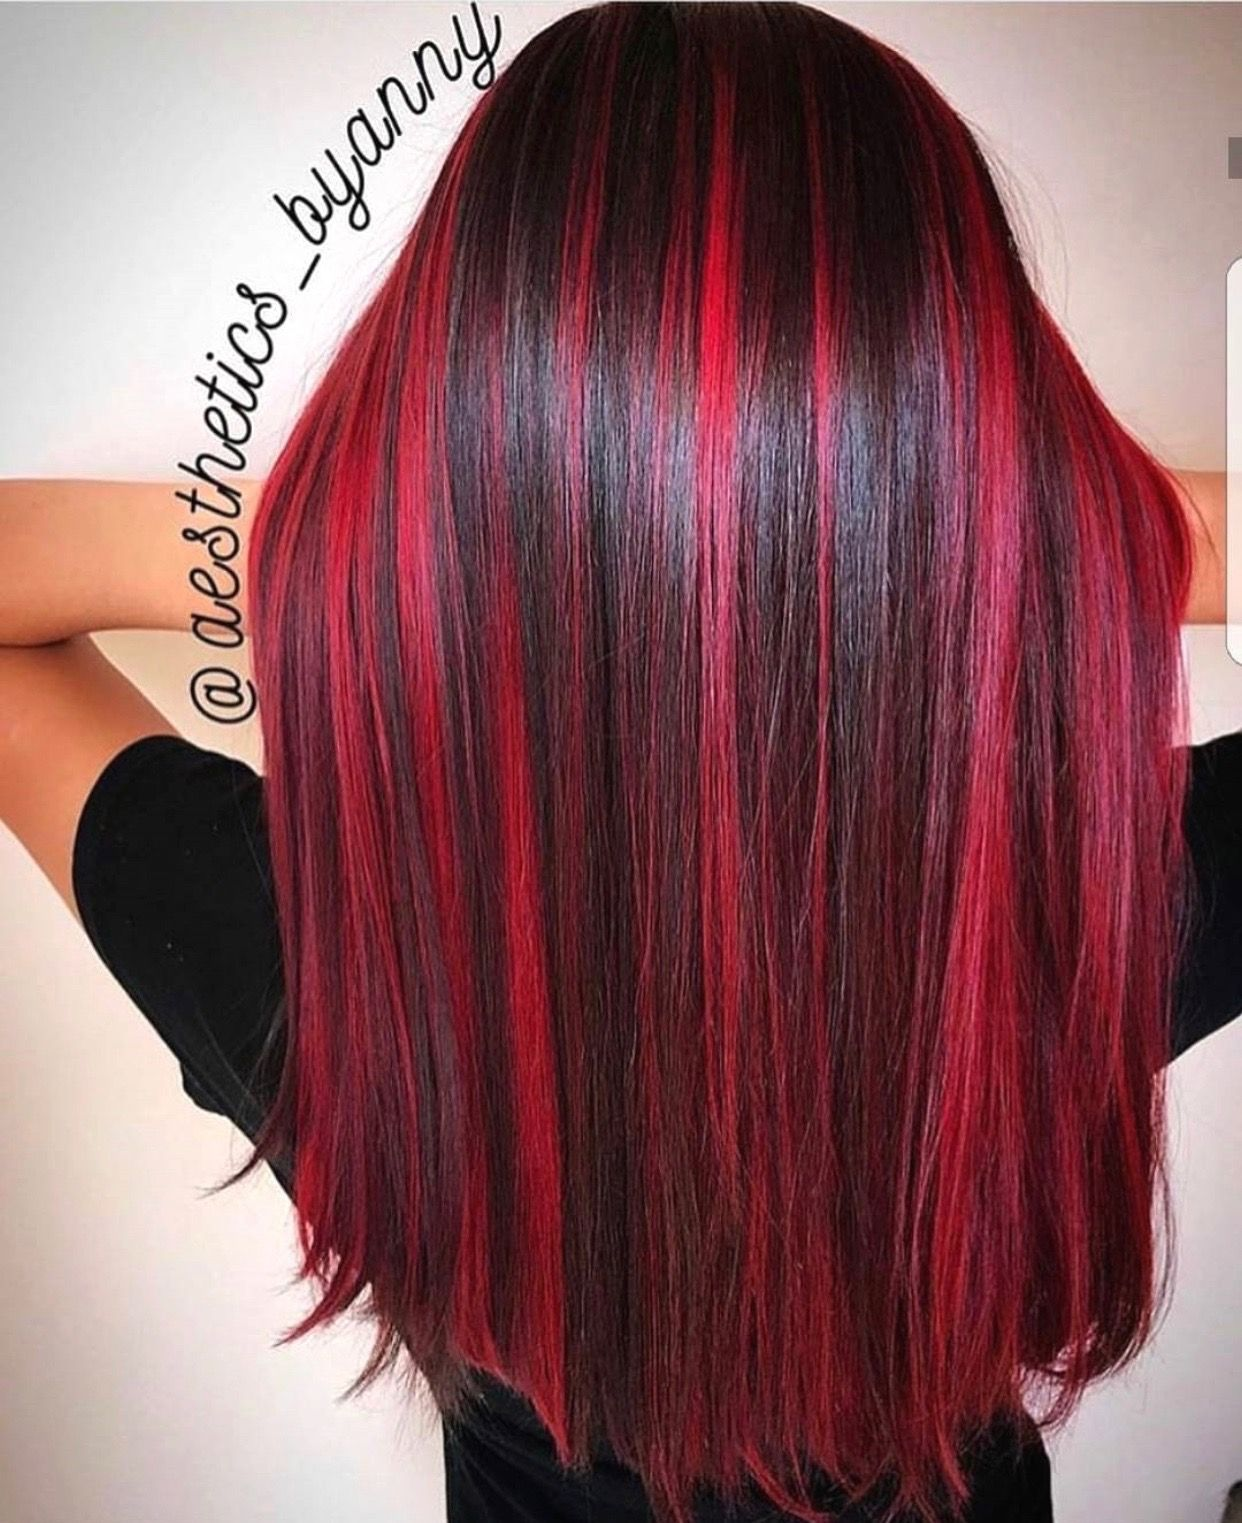 Black Long Hair With Lots Of Dark Pink Red Burgundy Highlights Color Added Red Hair With Highlights Hair Highlights Hair Color For Black Hair